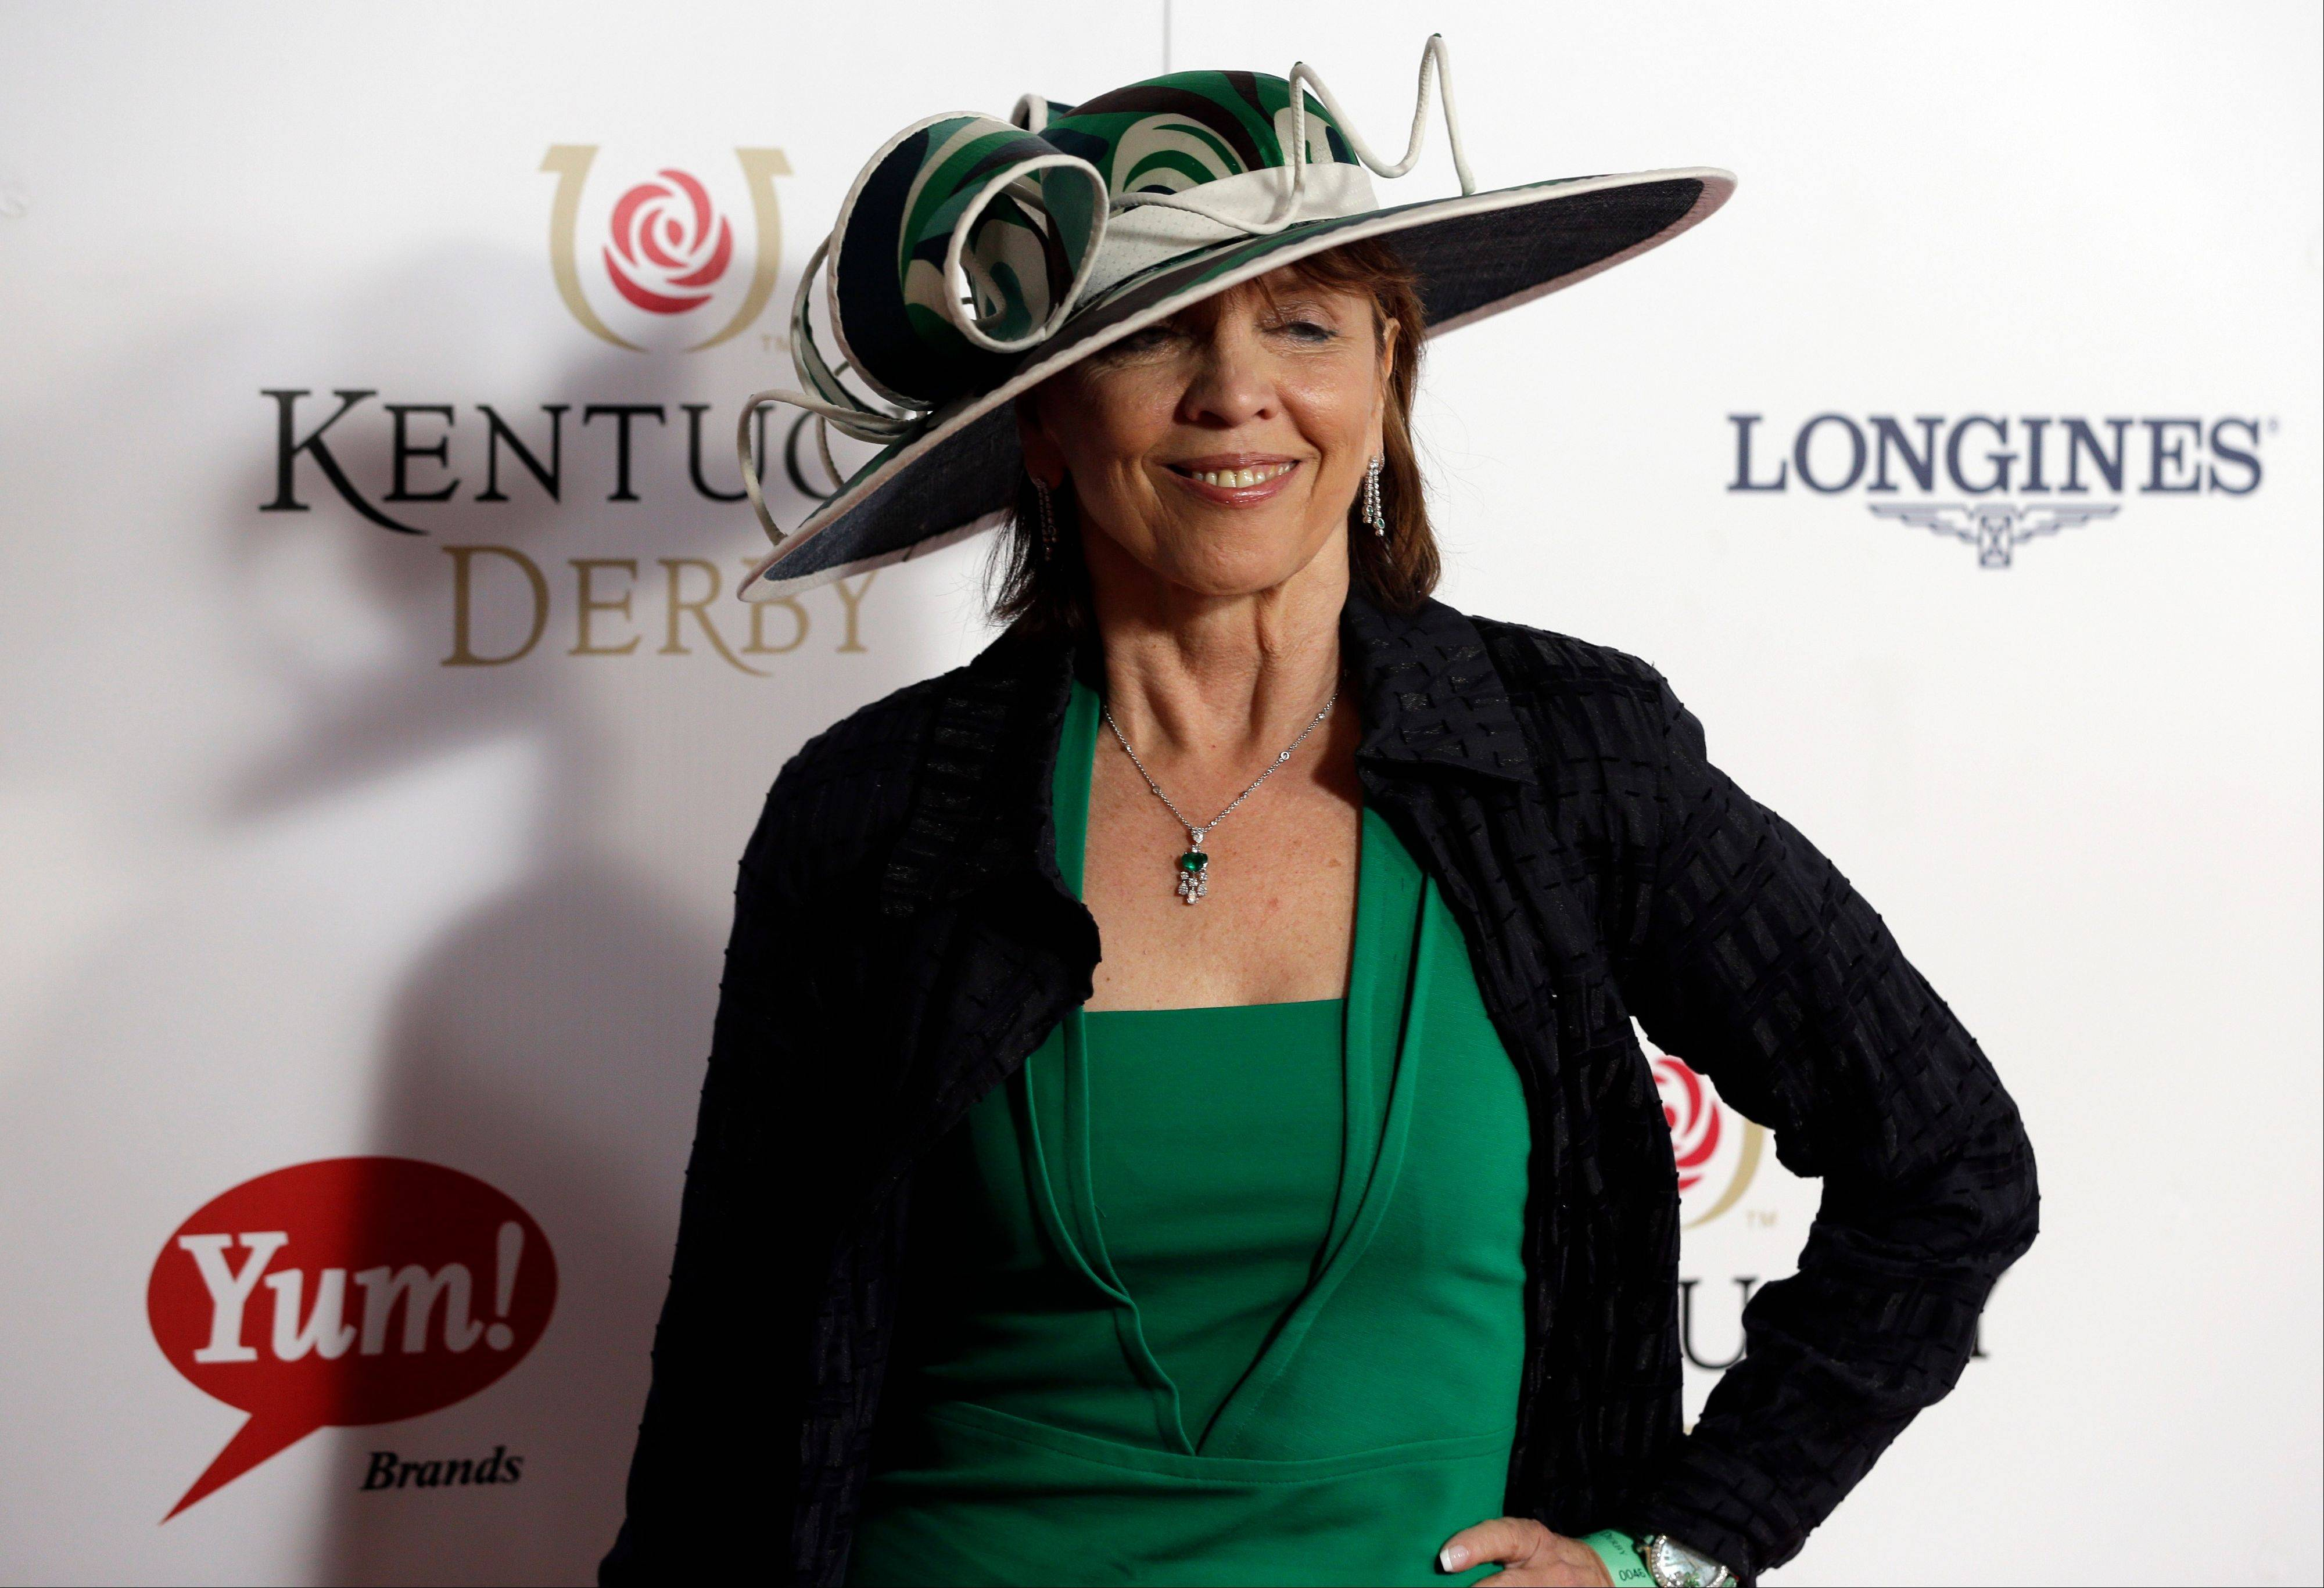 Author Nora Roberts arrives to attend the 139th Kentucky Derby at Churchill Down.